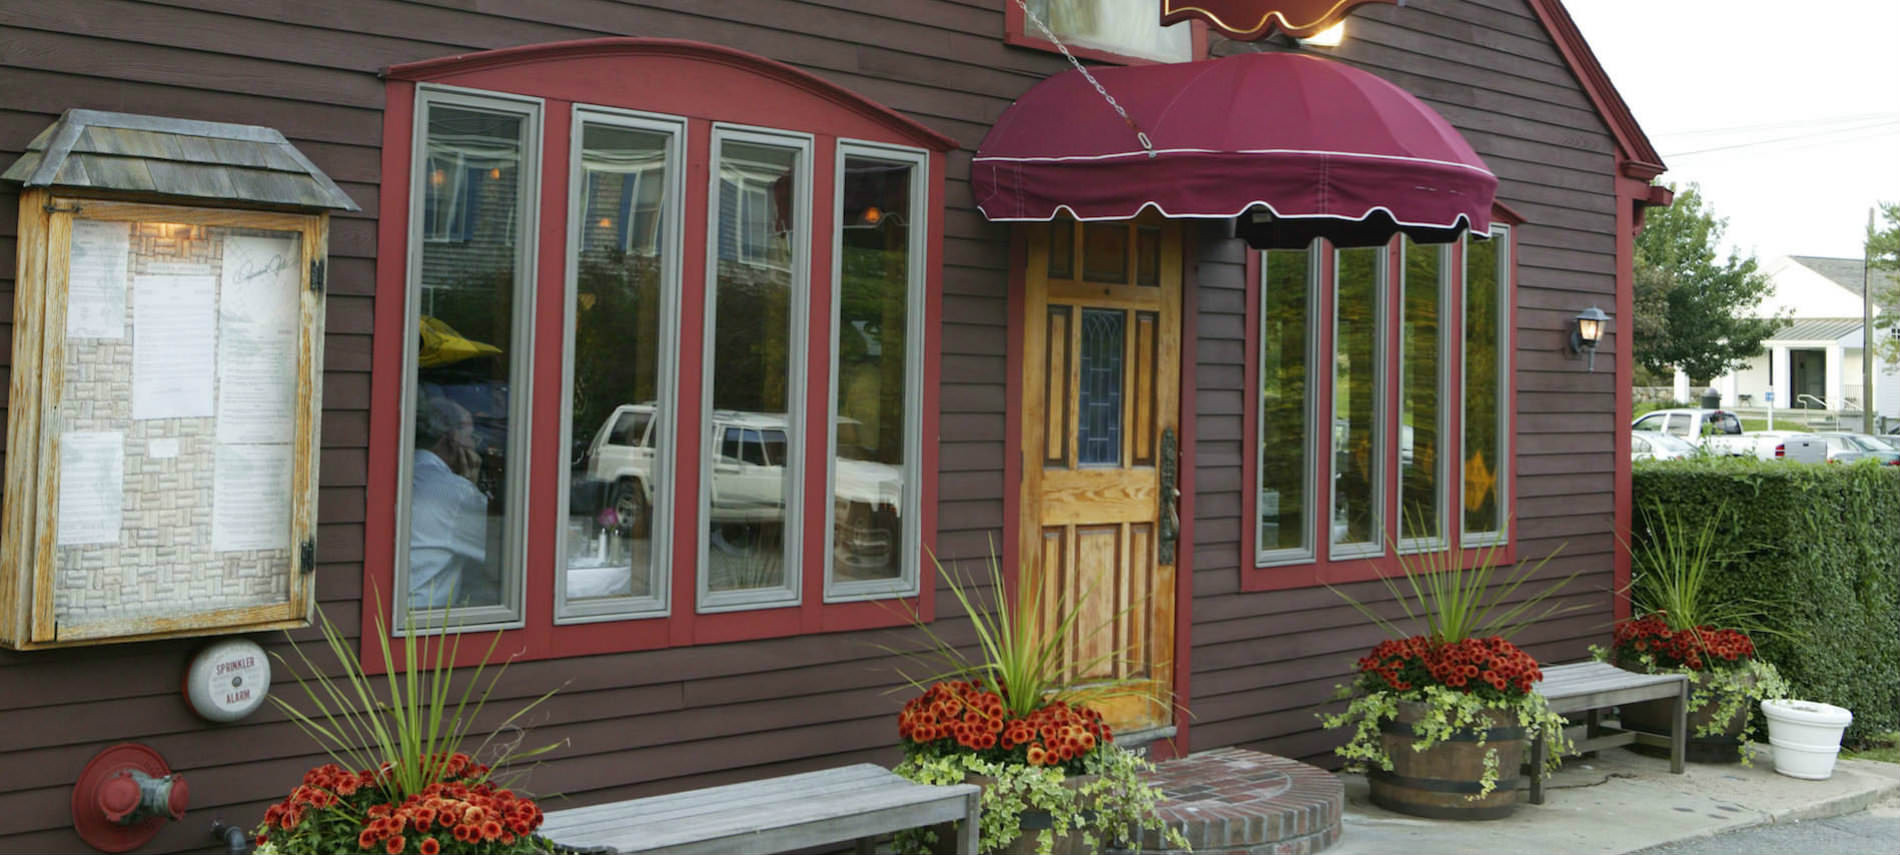 Building with brown siding and red trim, with colorful barrels of flowers around benches and porch..